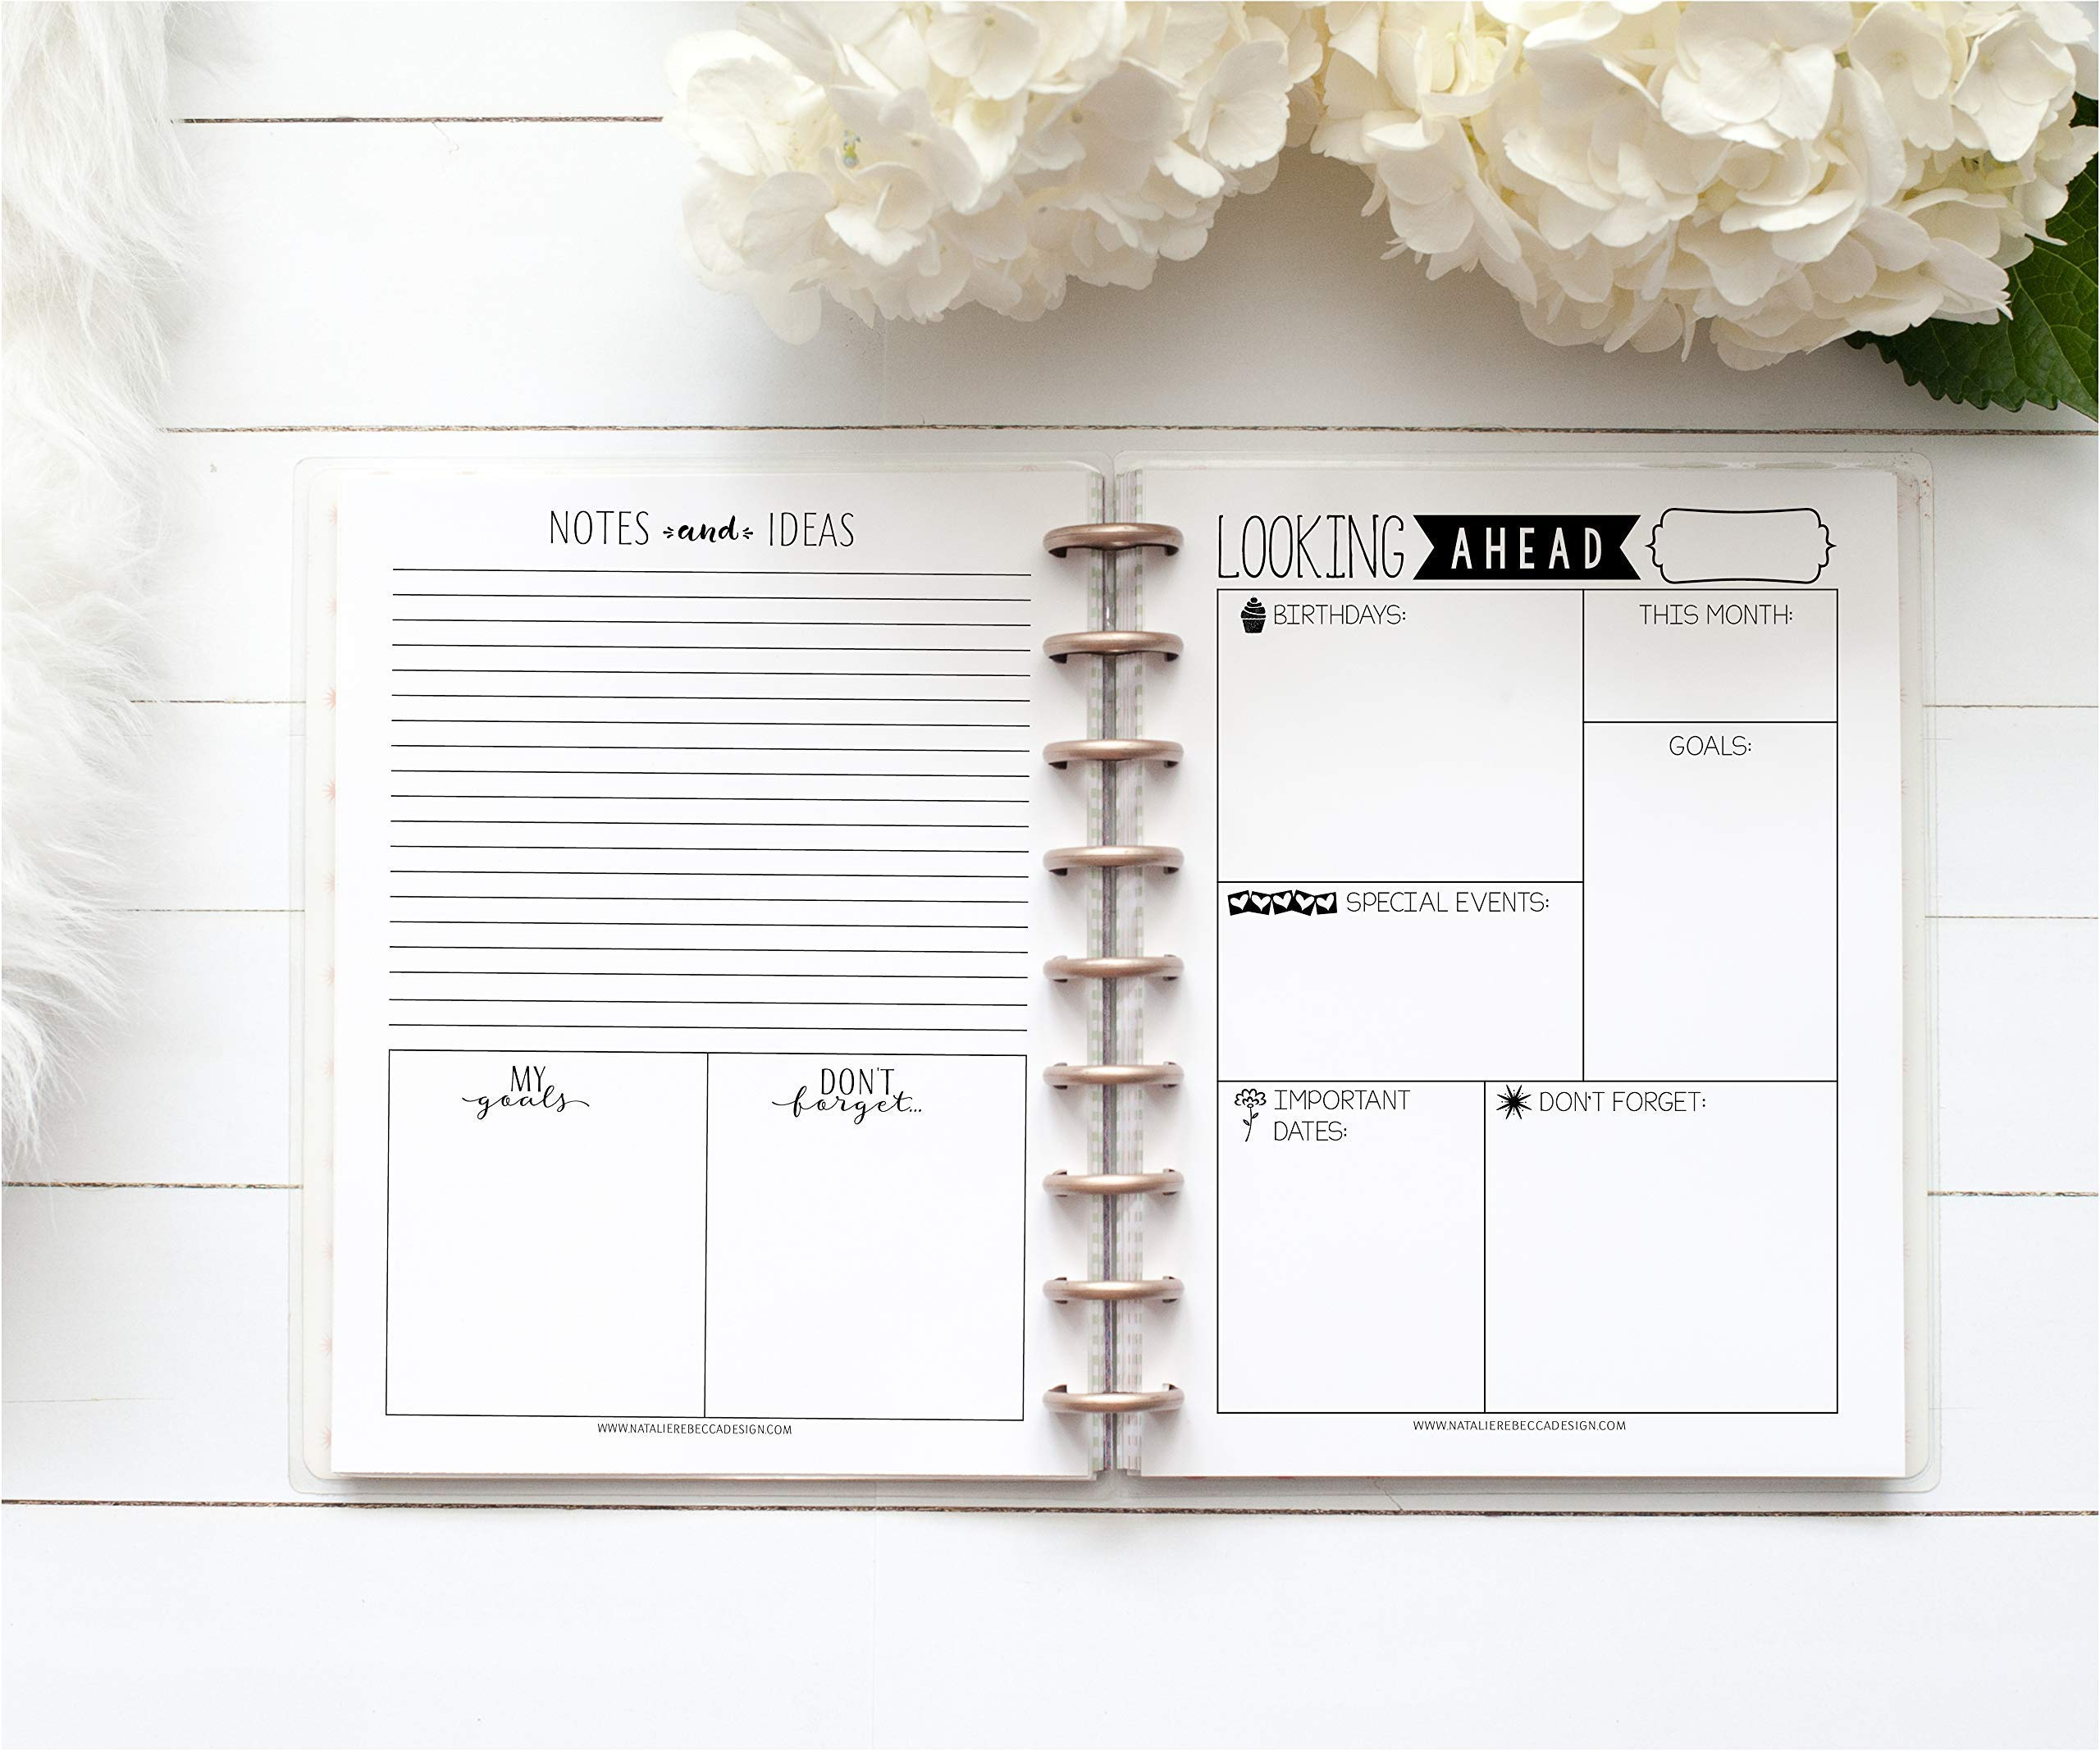 Looking Ahead Monthly Reflection Page for Happy Planner, Fits 9-Disc Notebooks, 7''x9.25 (Notebook Not Included)